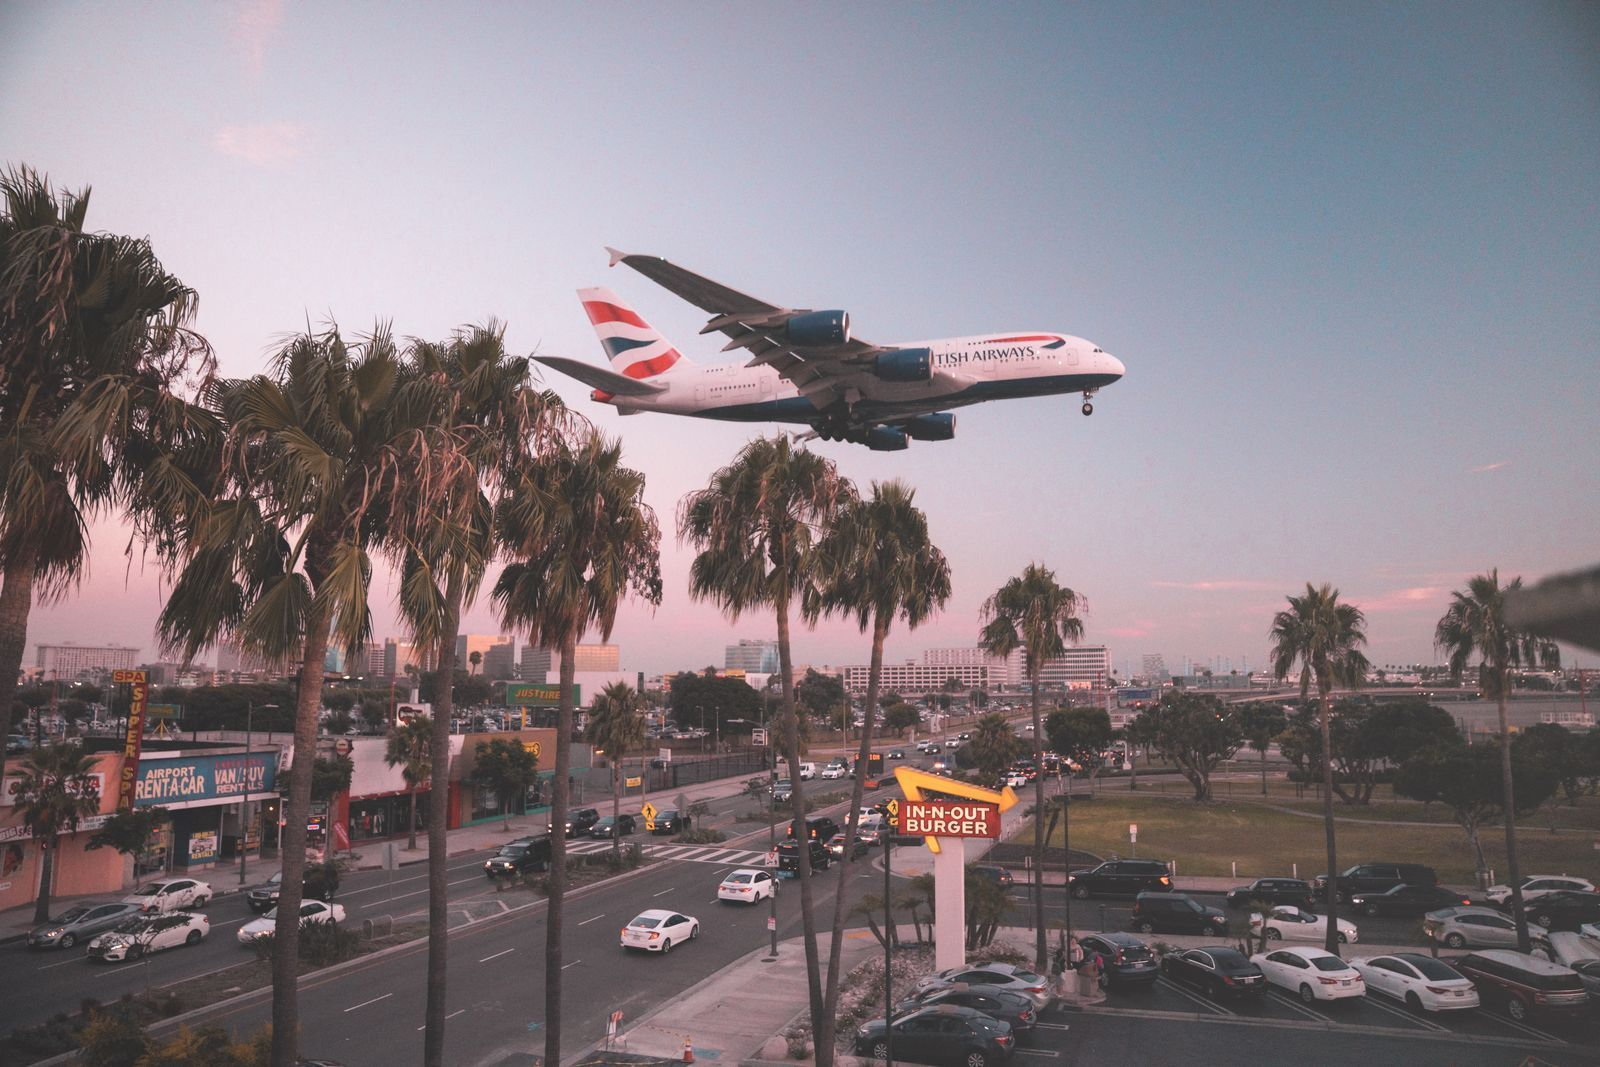 British Airways plane flying over iconic California as passenger numbers on the rise in the united states